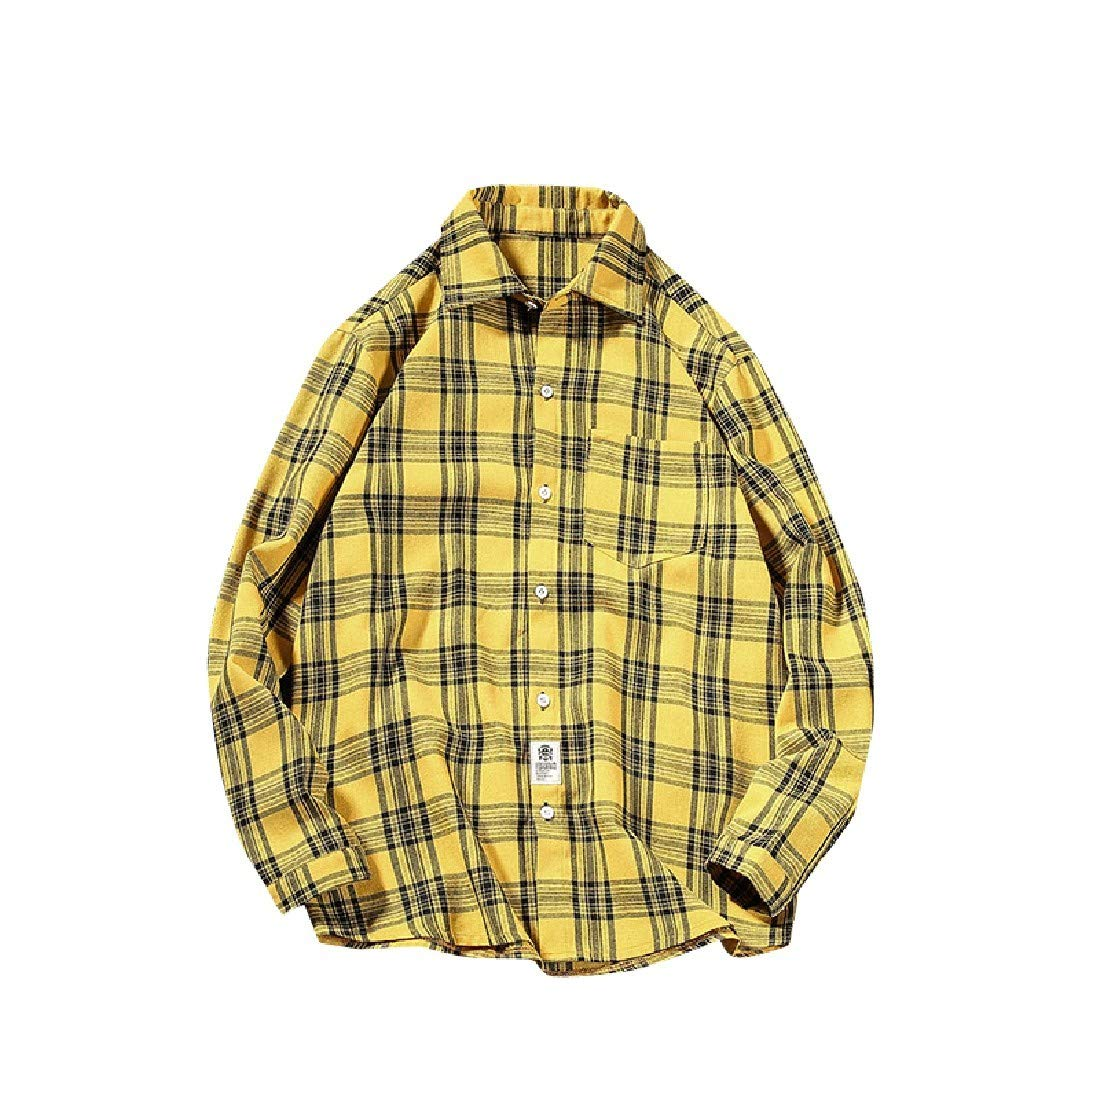 YUNY Mens All-Contest Plaid Lovers Leisure Long Sleeve Polo Top Shirt Yellow S